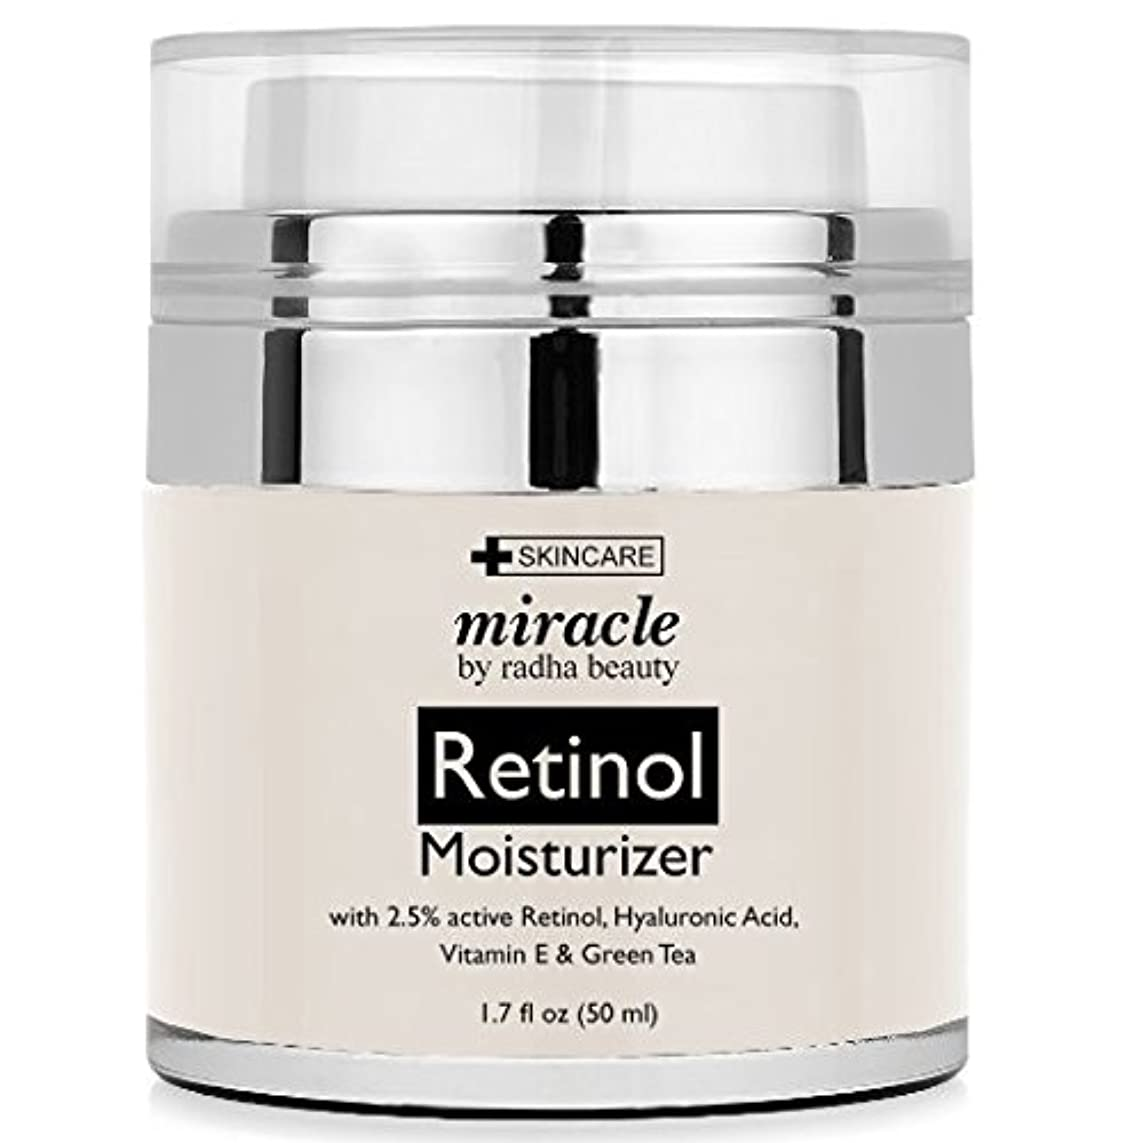 クール驚くべき焦がすレチノール 保湿クリーム Retinol Moisturizer Cream for Face - With Retinol, Hyaluronic Acid, Tea Tree Oil and Jojoba Oil、 50ml (海外直送品) [並行輸入品]